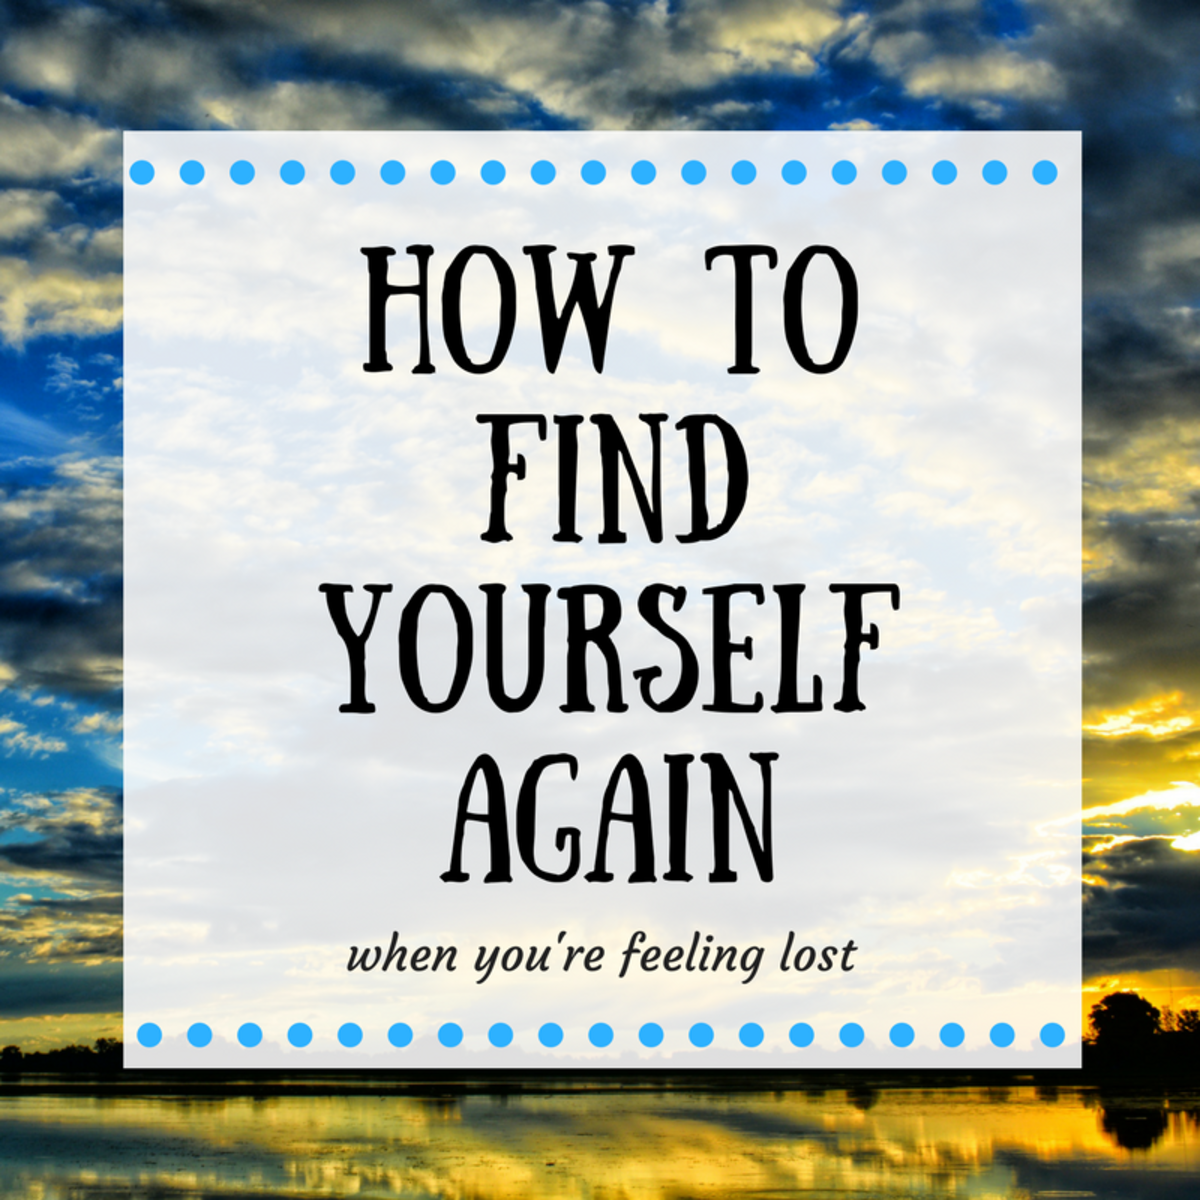 How to Find Yourself: Feeling Lost & Finding Yourself Again